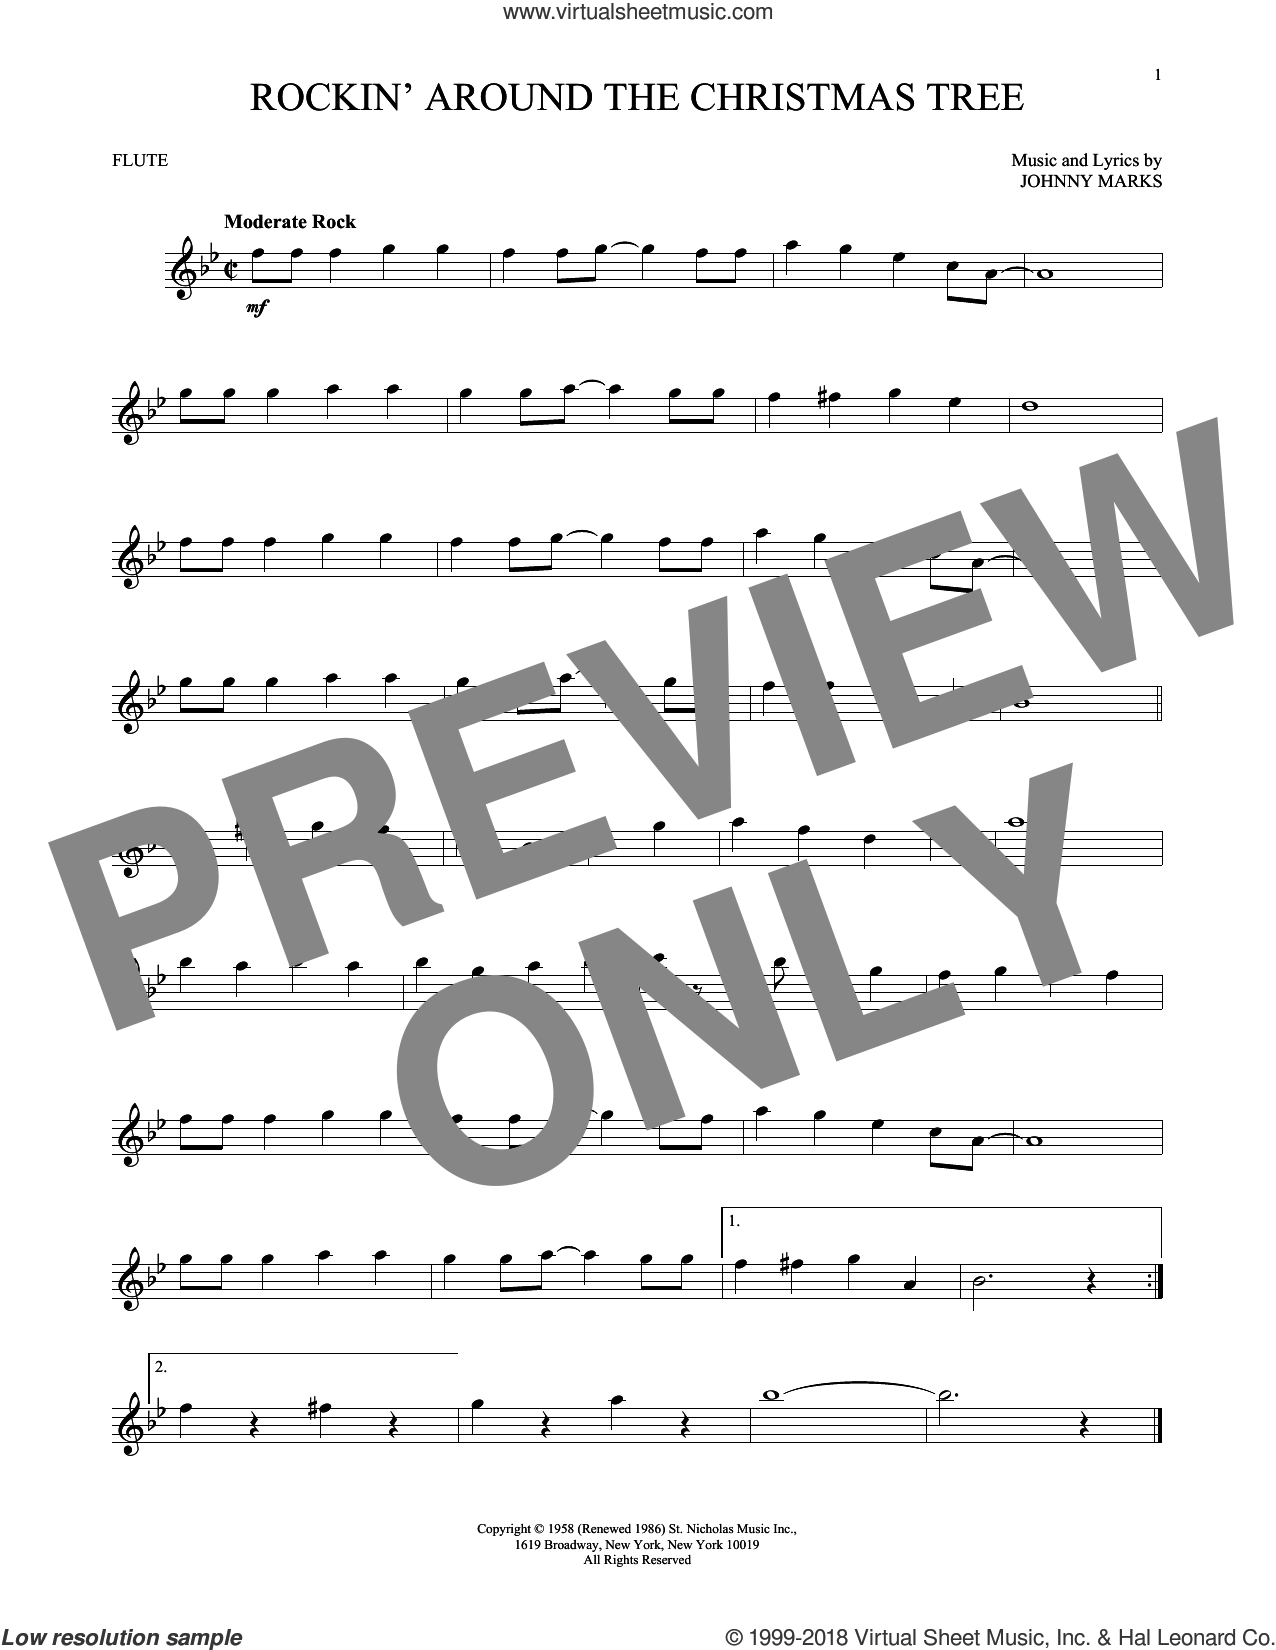 Rockin' Around The Christmas Tree sheet music for flute solo by Johnny Marks, intermediate skill level